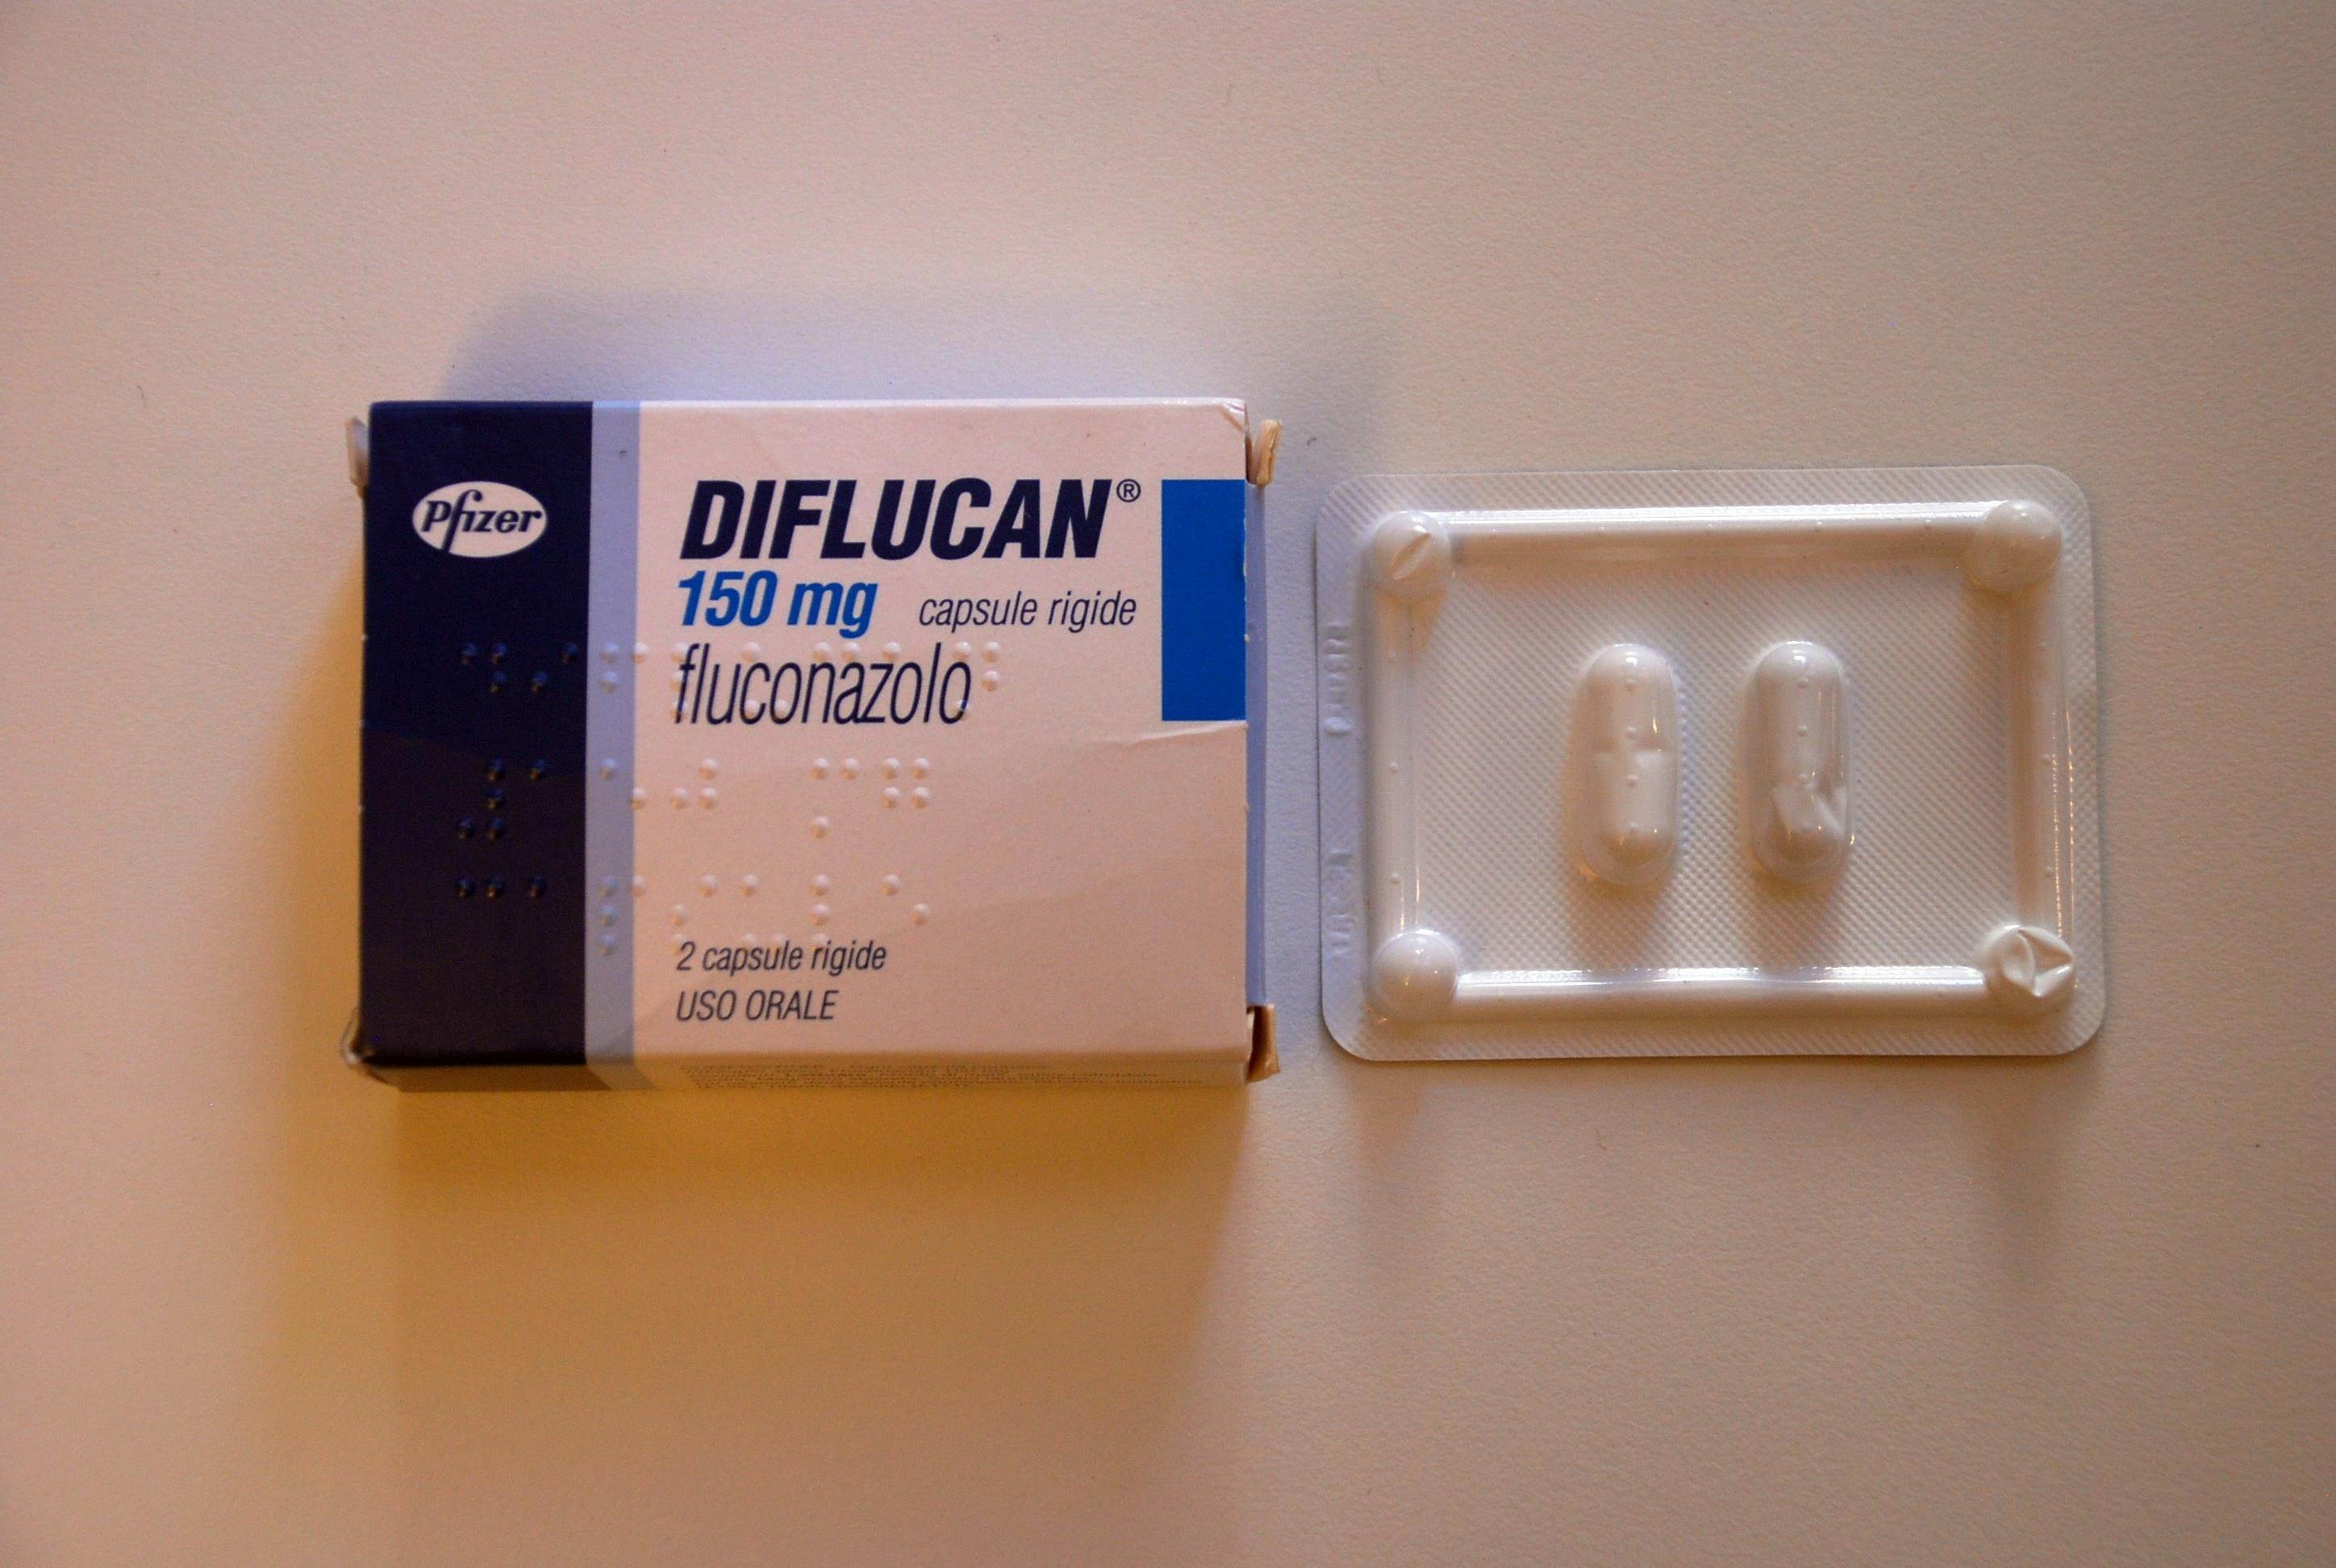 Find out how long it takes Diflucan to work!